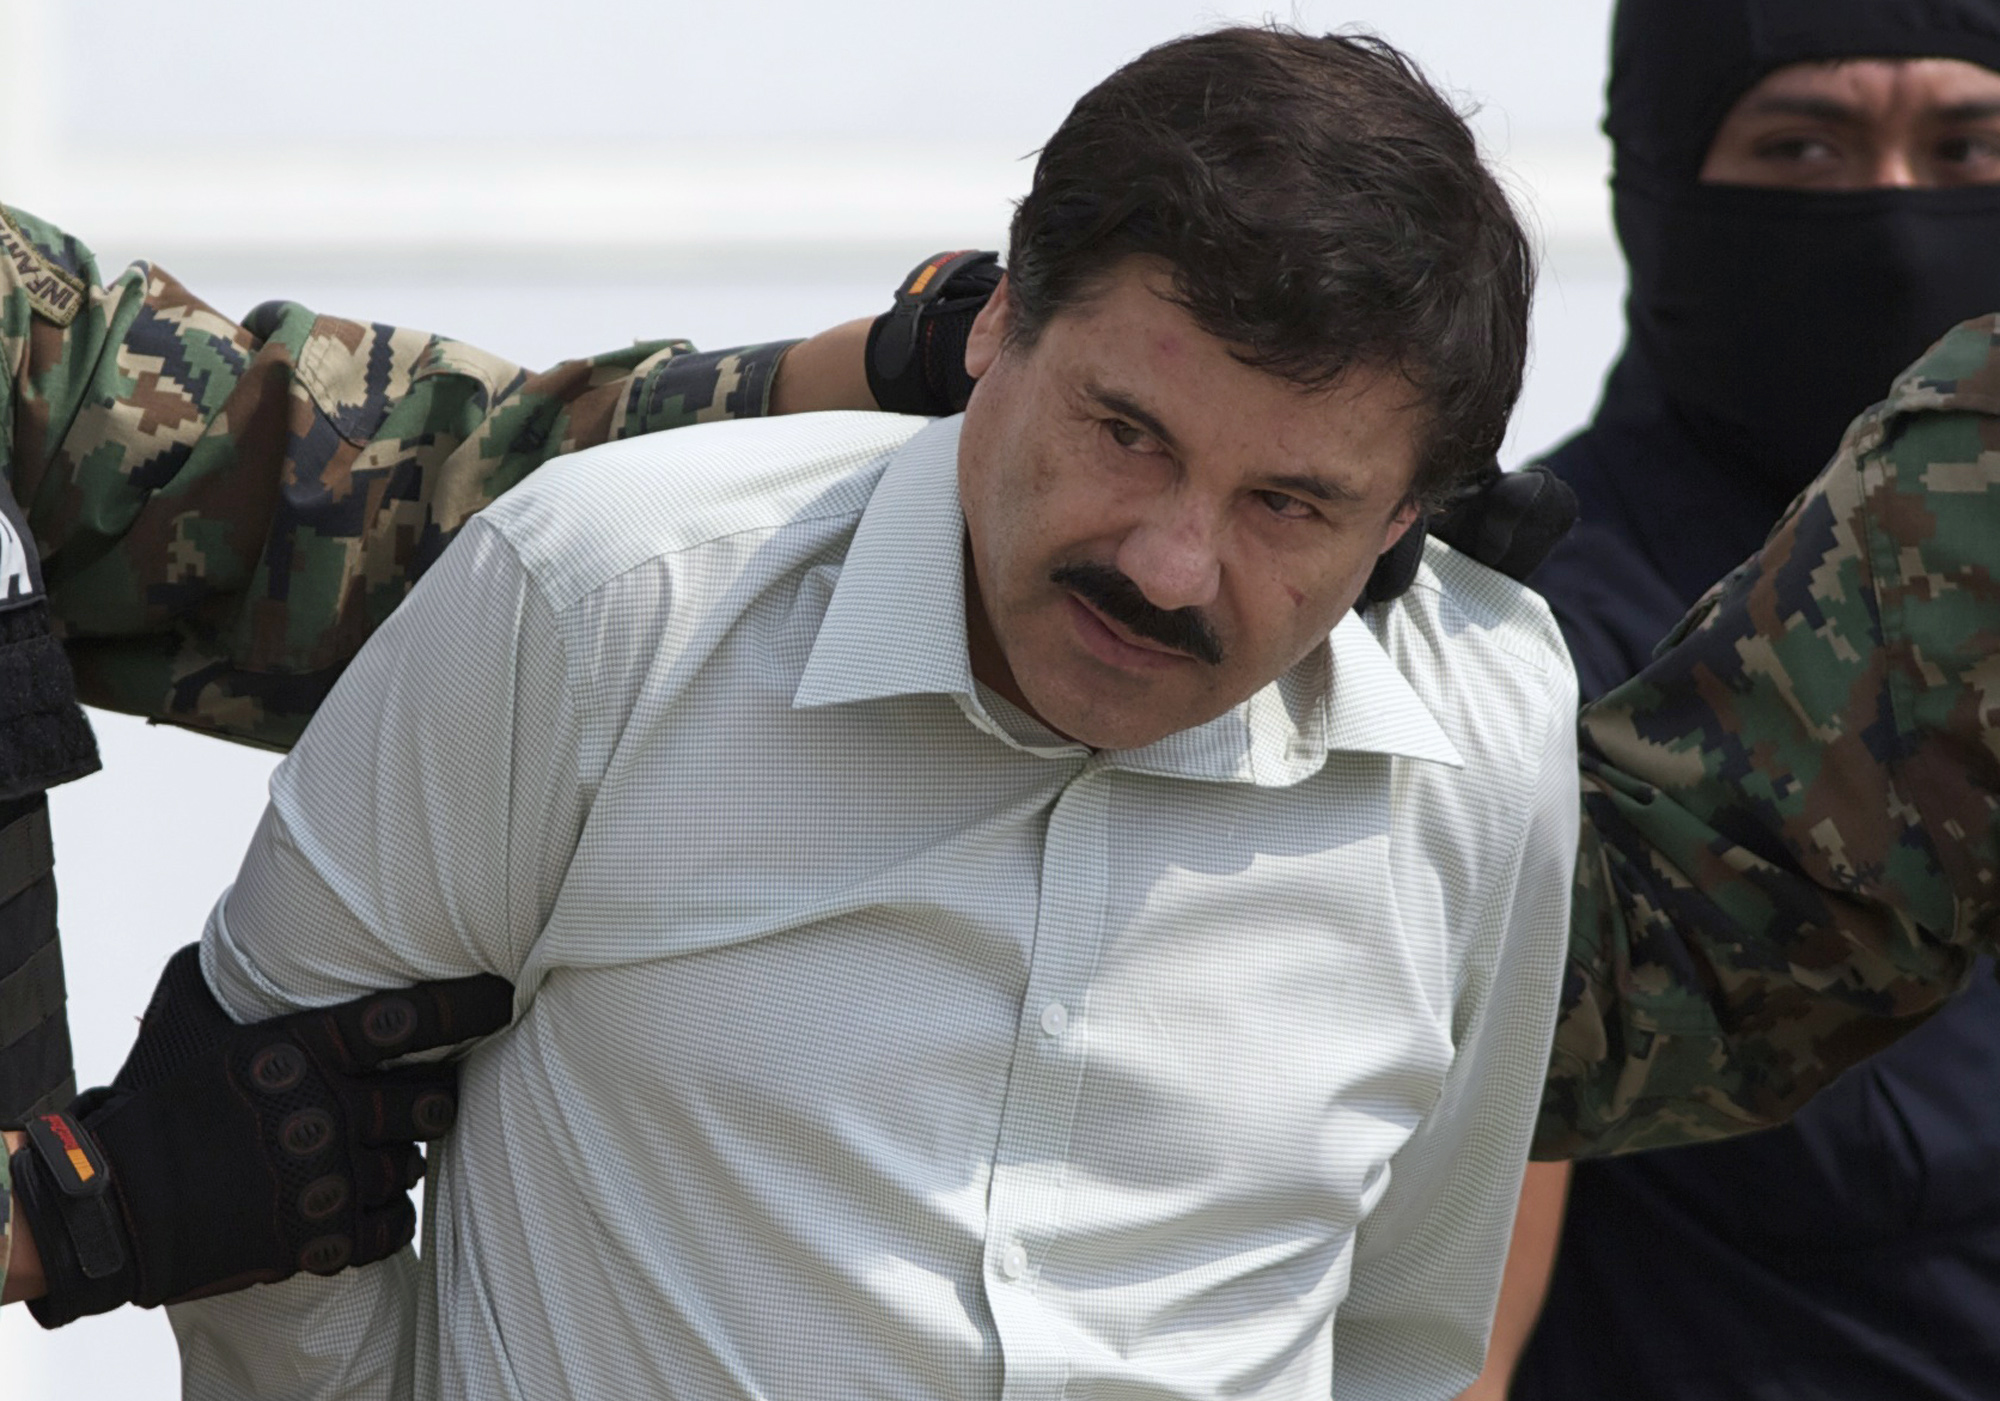 This Feb. 22, 2014, file photo shows Joaquin  El Chapo  Guzman, the head of Mexico's Sinaloa Cartel, being escorted to a helicopter in Mexico City following his capture overnight in the beach resort town of Mazatlan